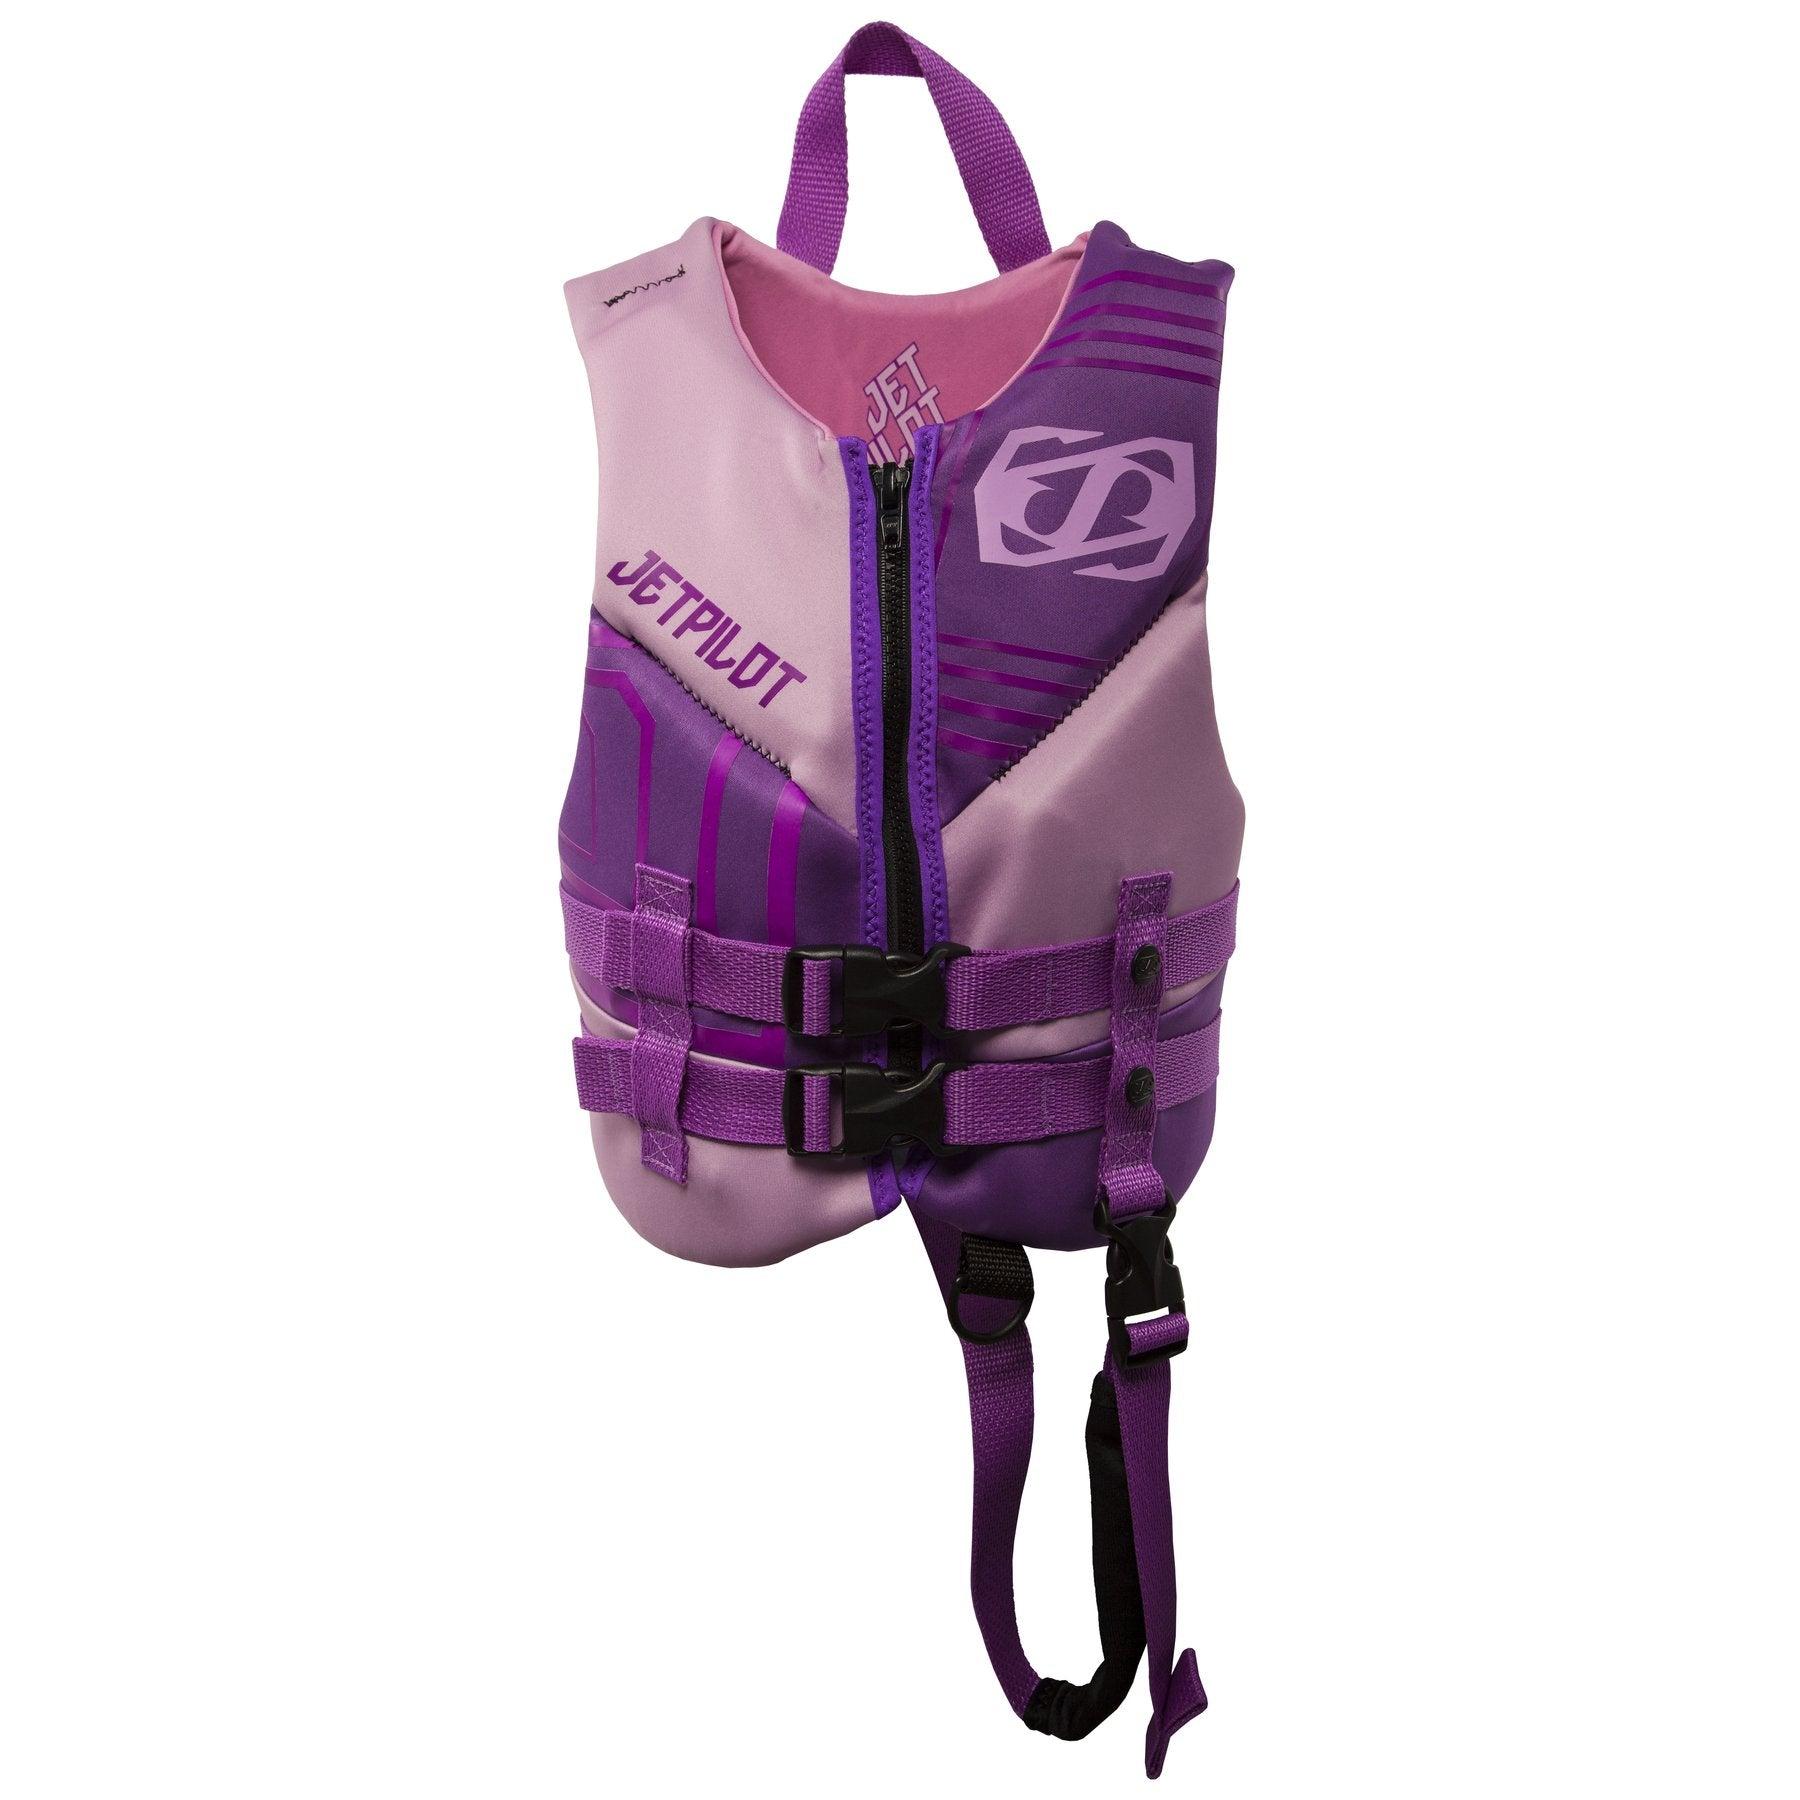 Jet Pilot Girl's Cause Child Life Jacket - 88 Gear